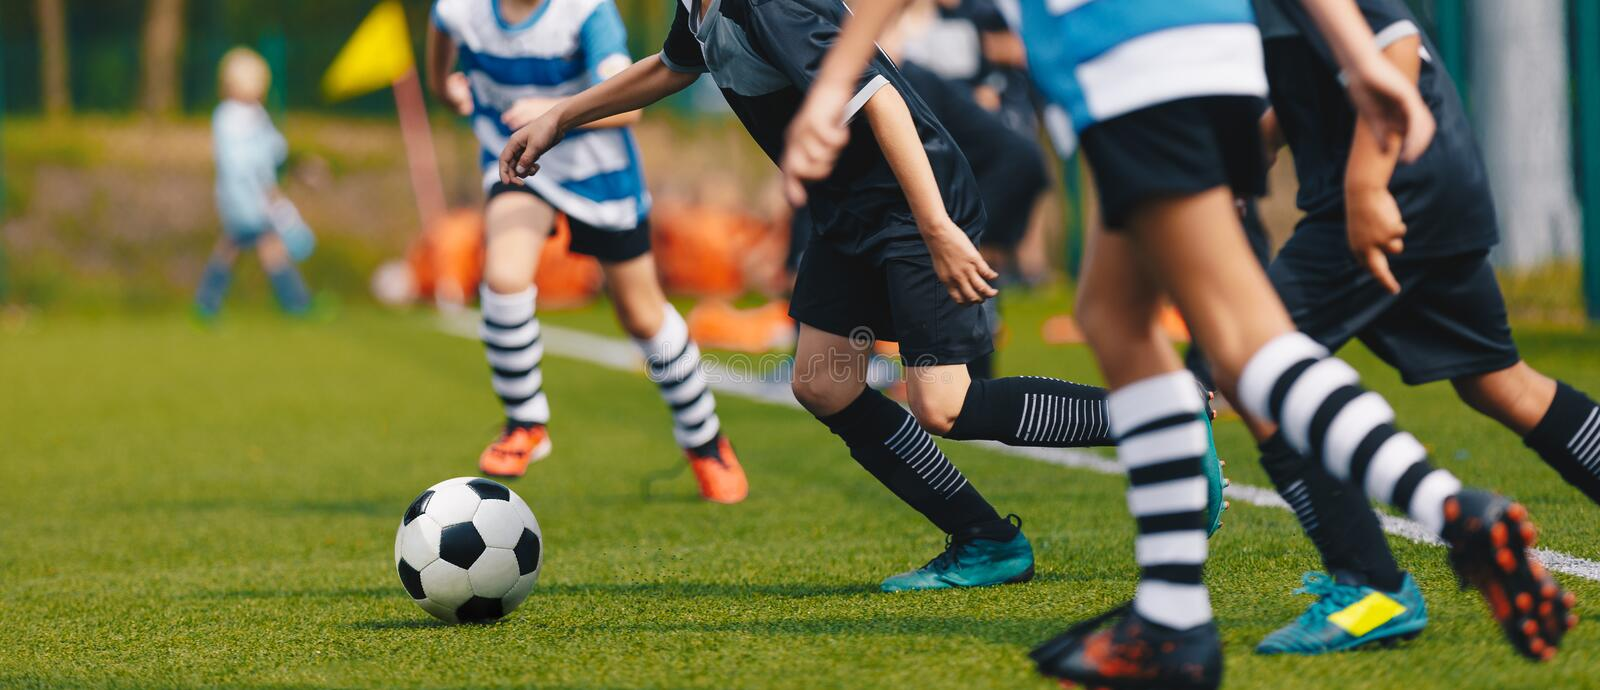 Youth Footballers Running on Grass Football Pitch and Kicking Ball royalty free stock image